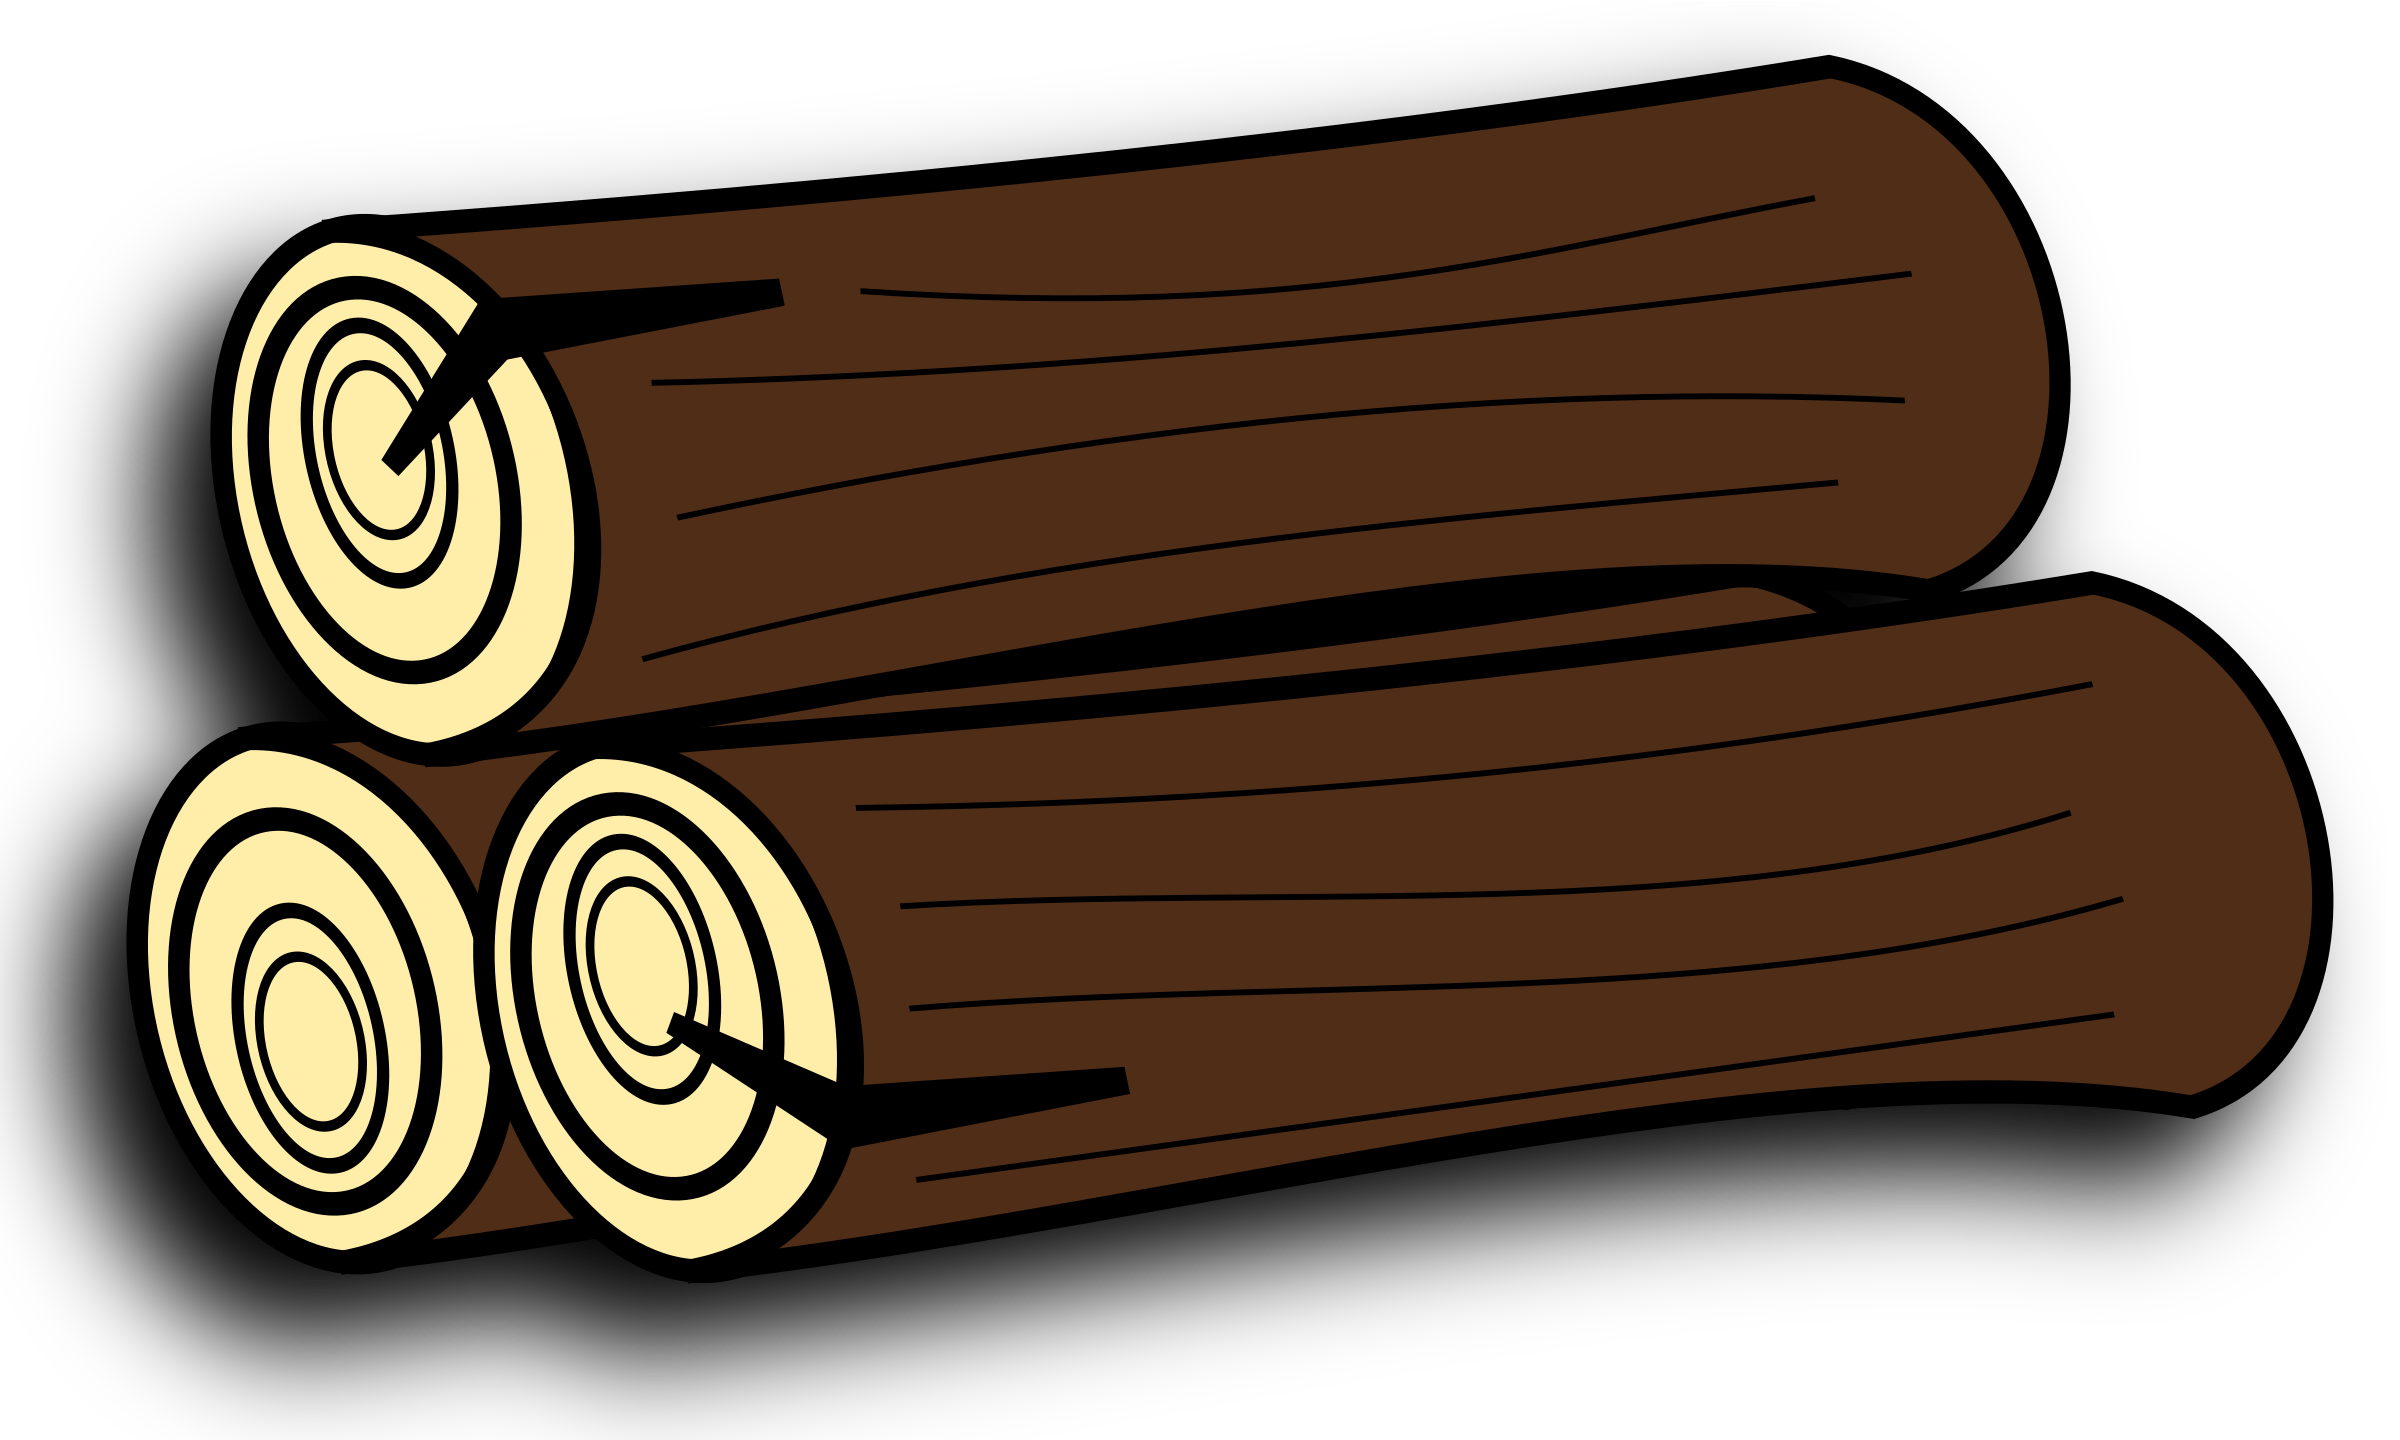 Log clipart lumber. Wood panda free images